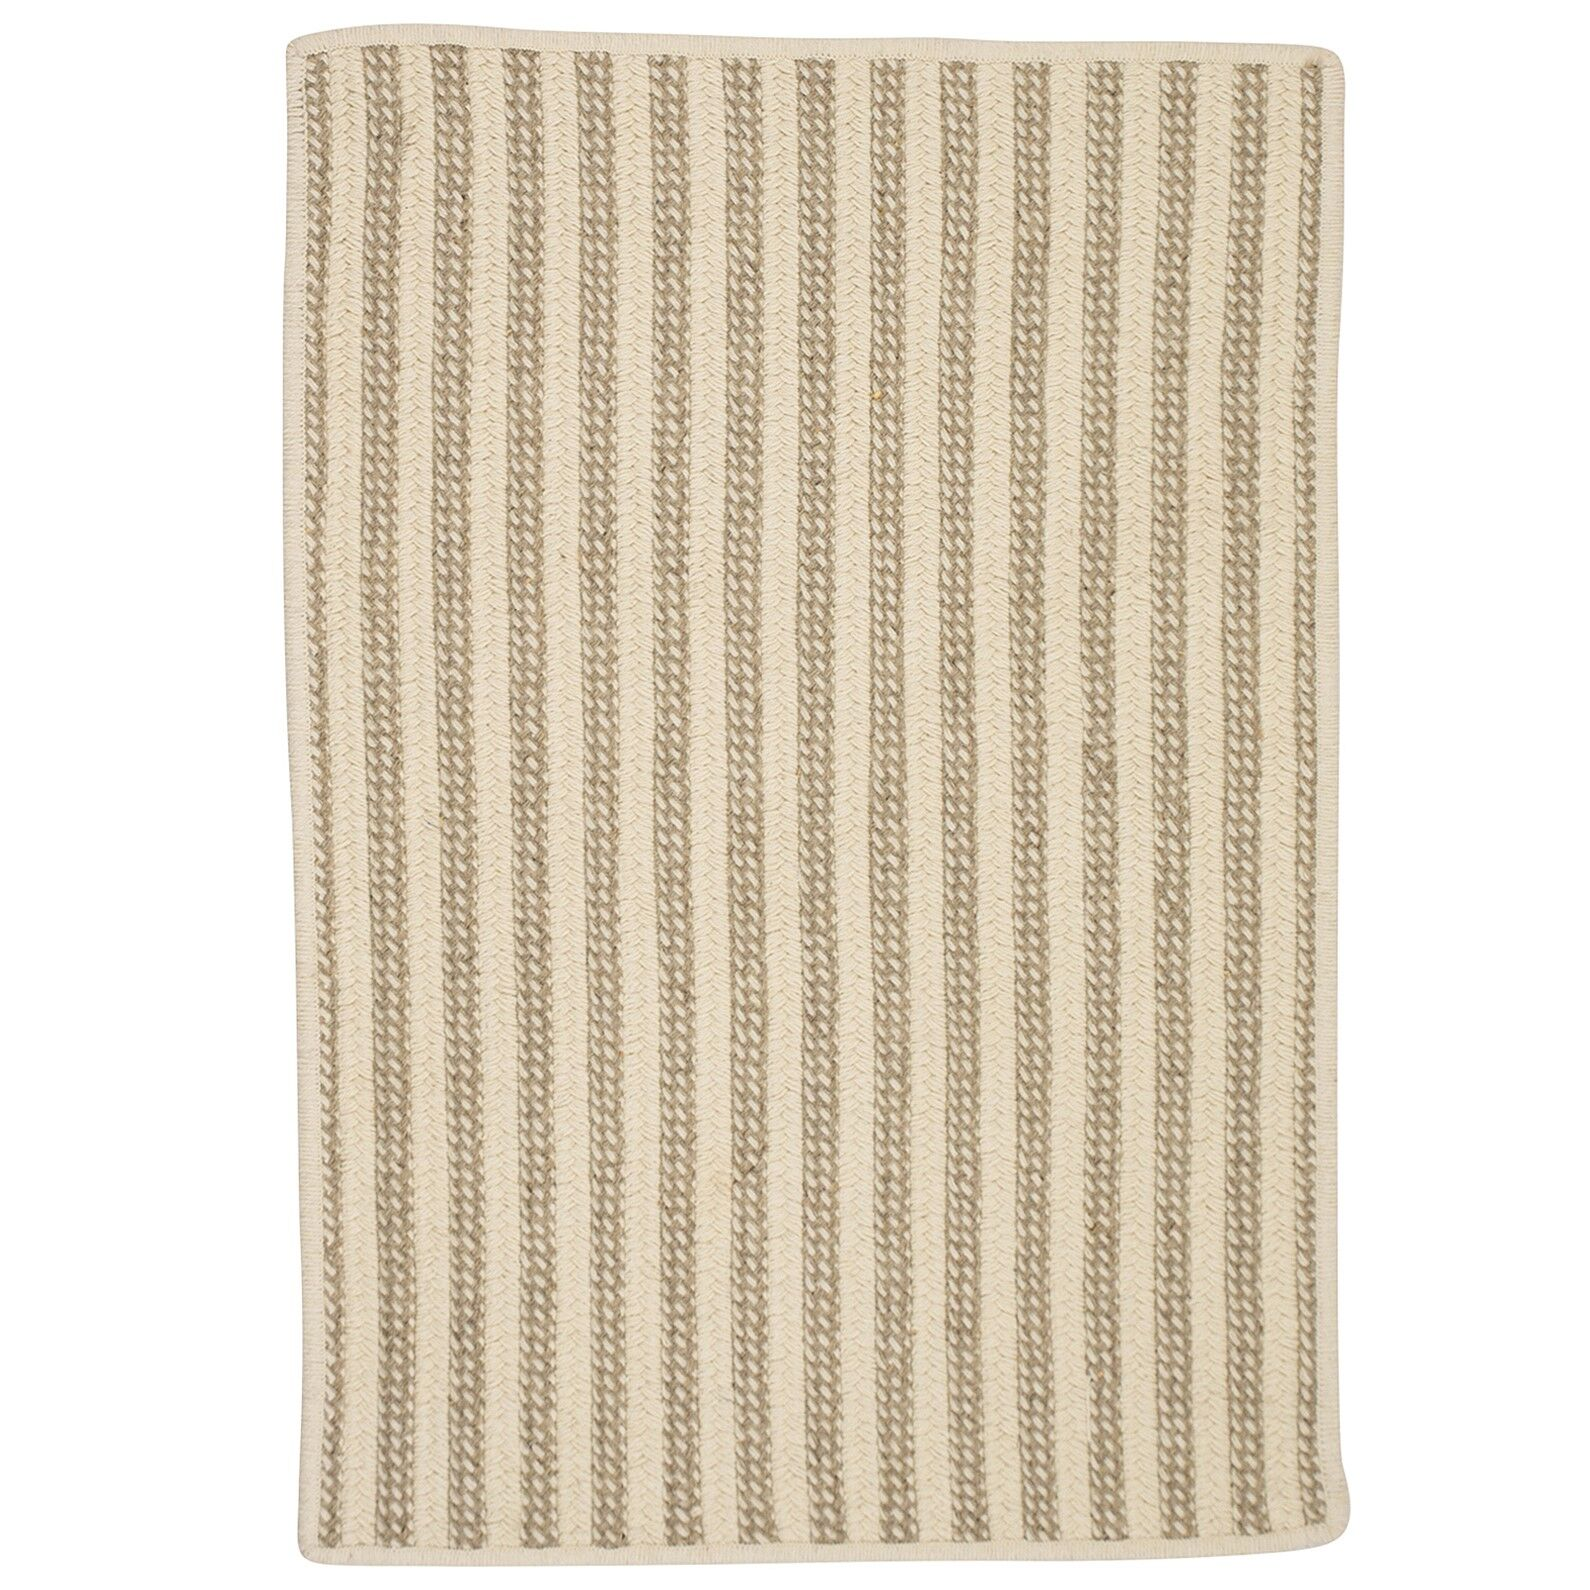 Cadenville Hand-Woven Natural Area Rug Rug Size: Rectangle 3' x 5'